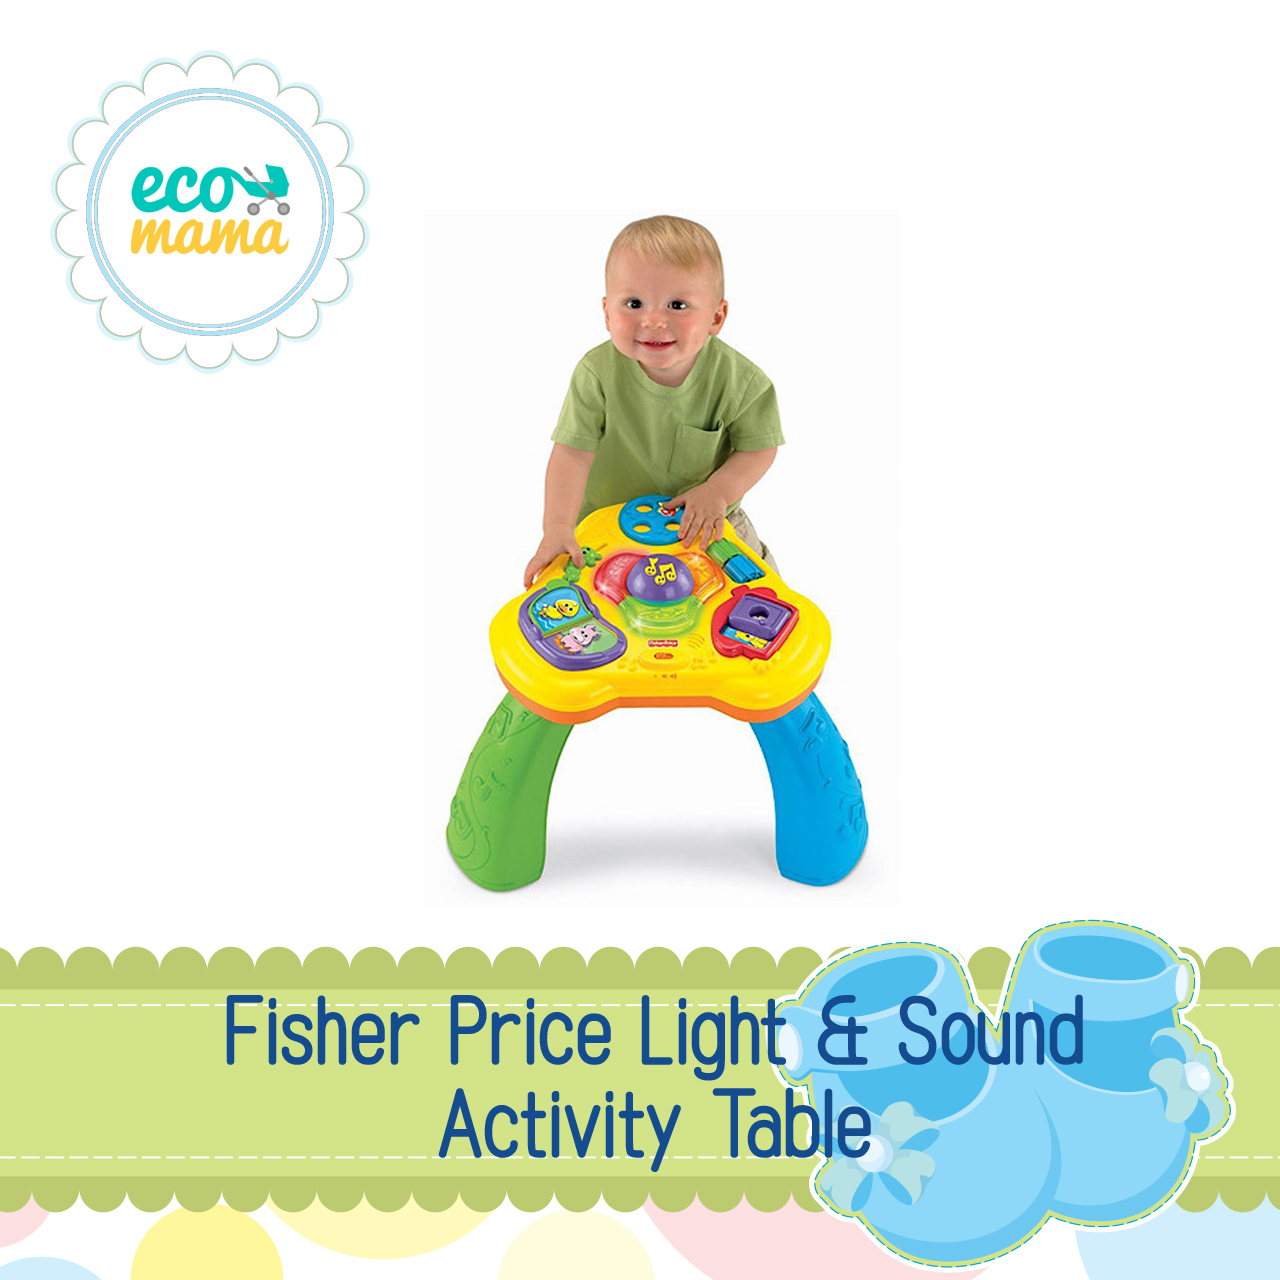 Fisher Price Light and Sound Activity Table